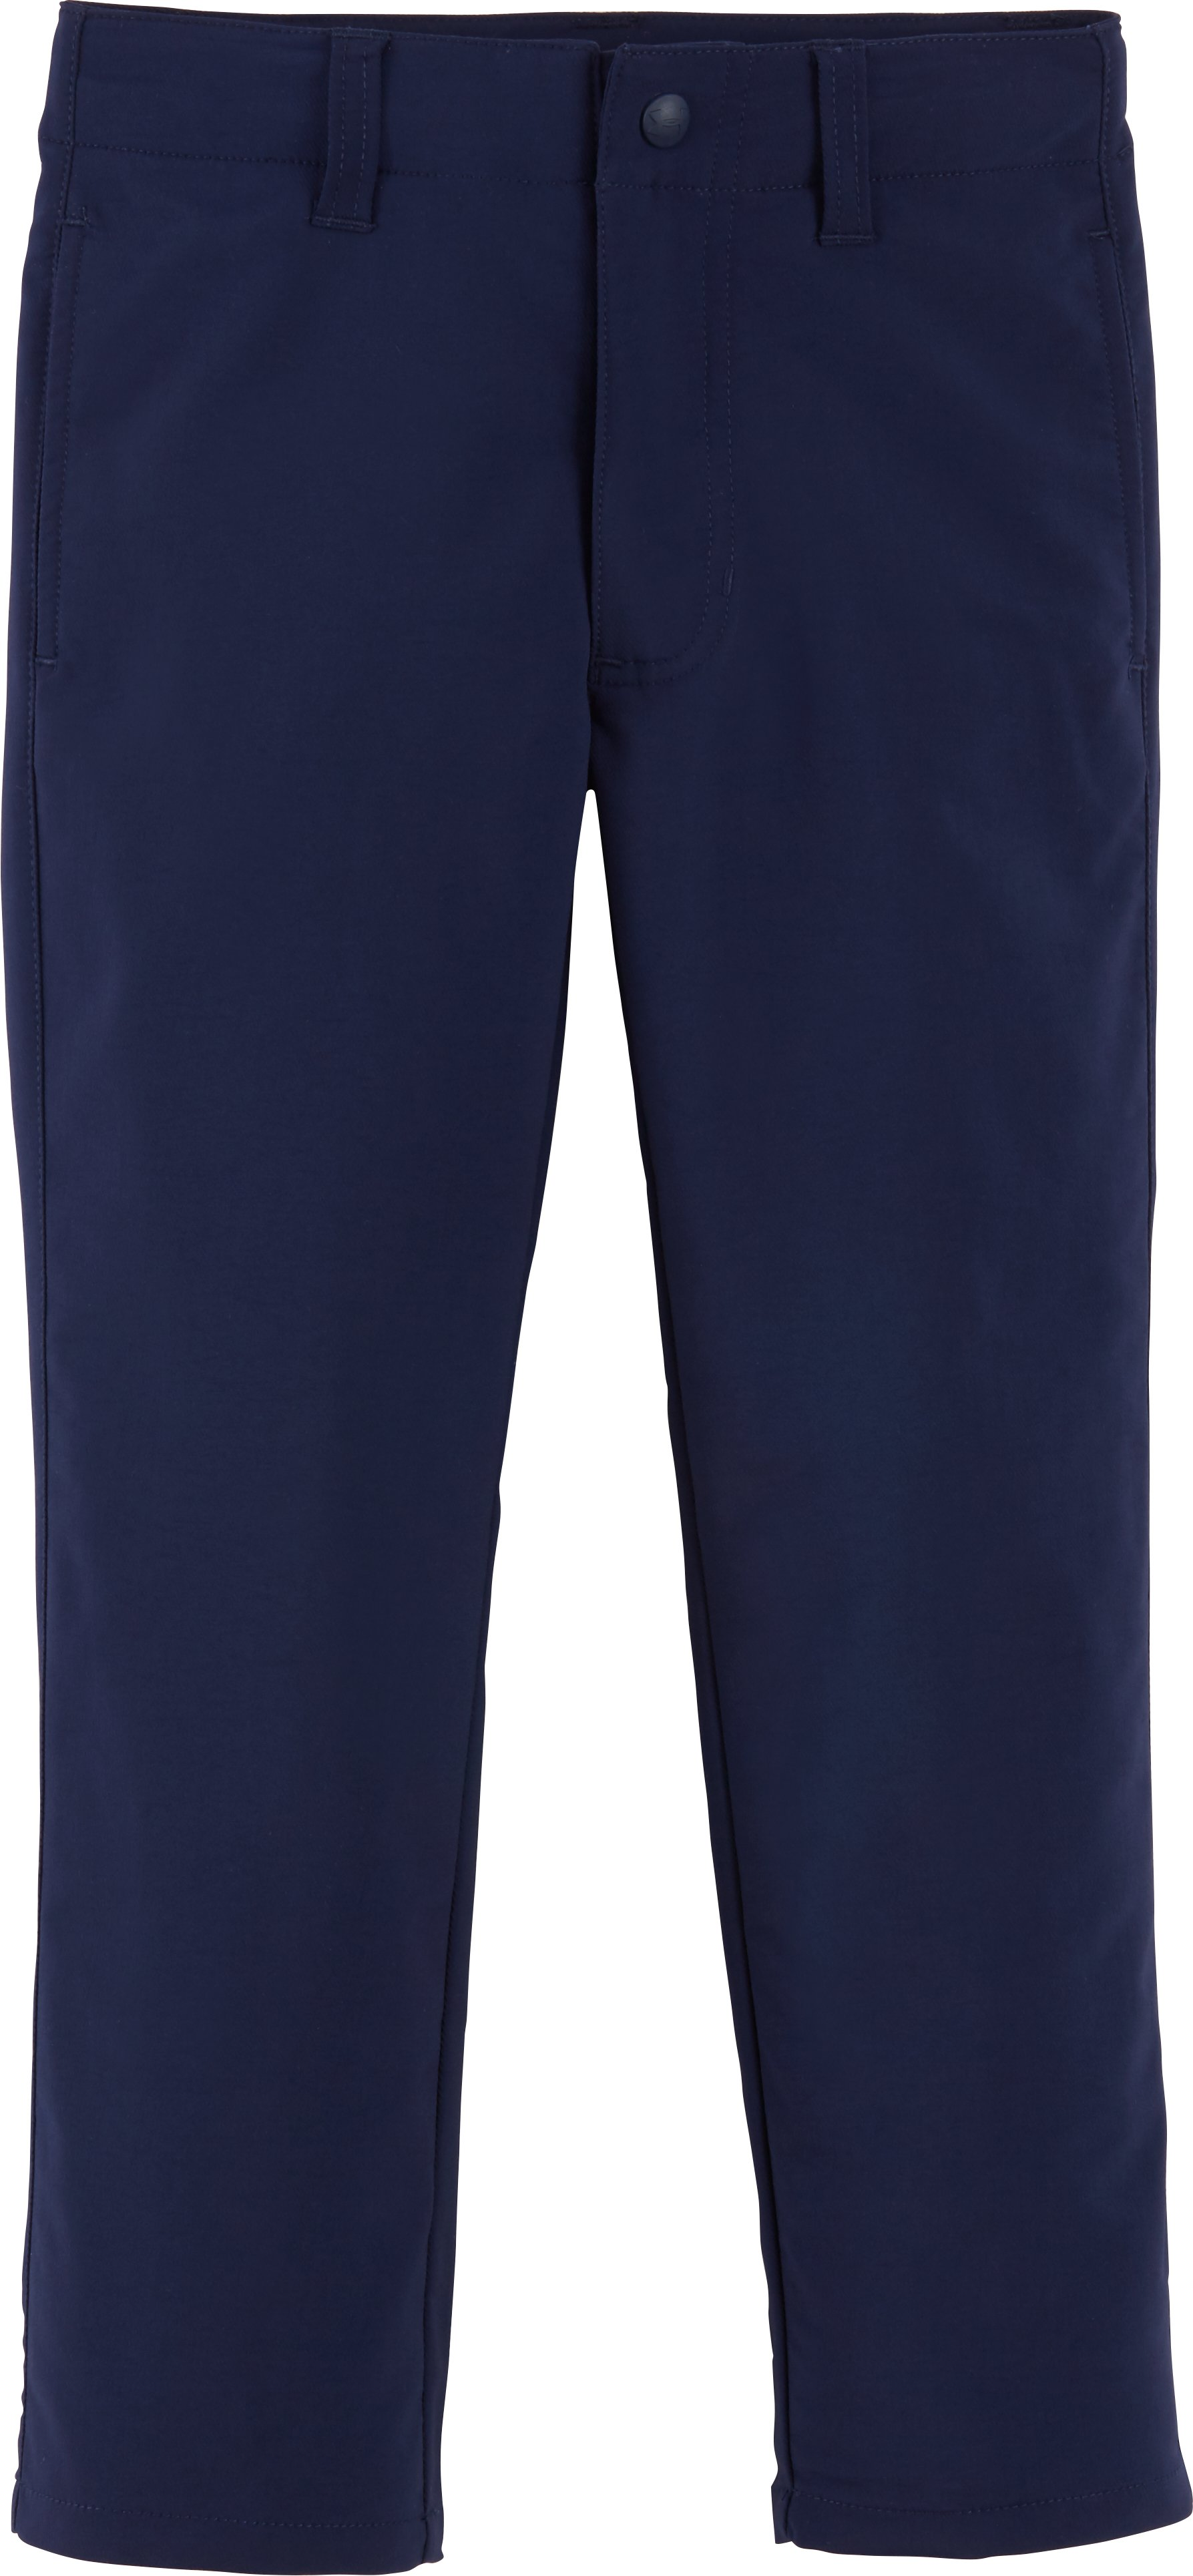 Boys' Pre-School UA Match Play Pants, NAVY SEAL, Laydown